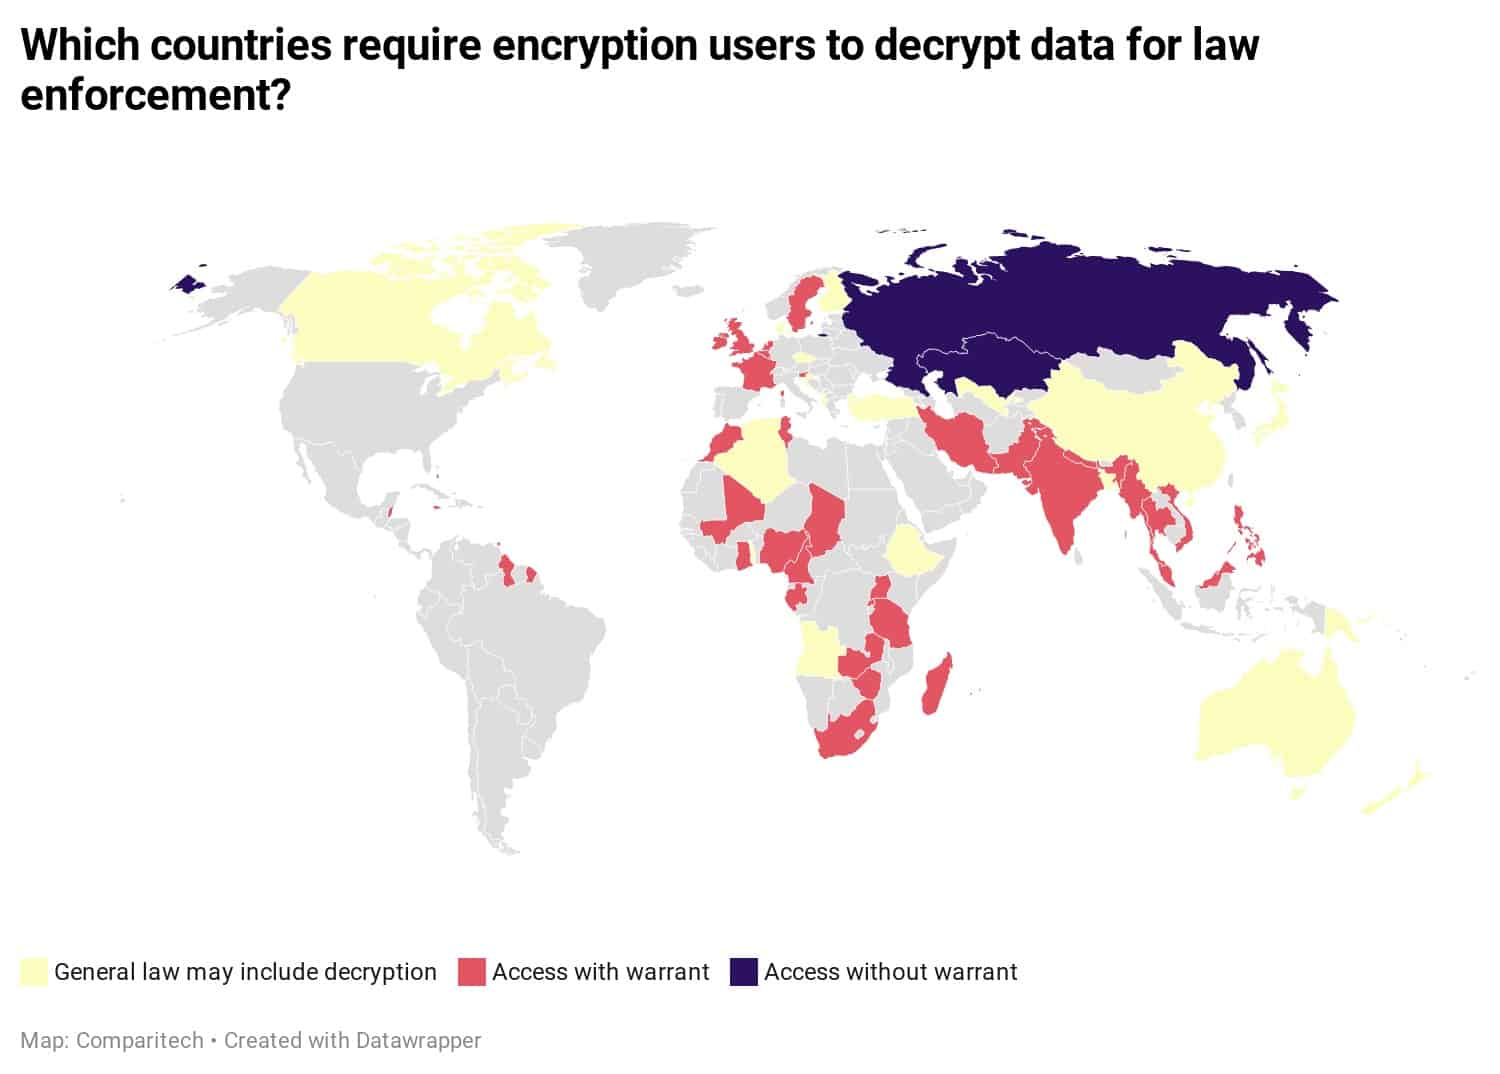 Encryption users